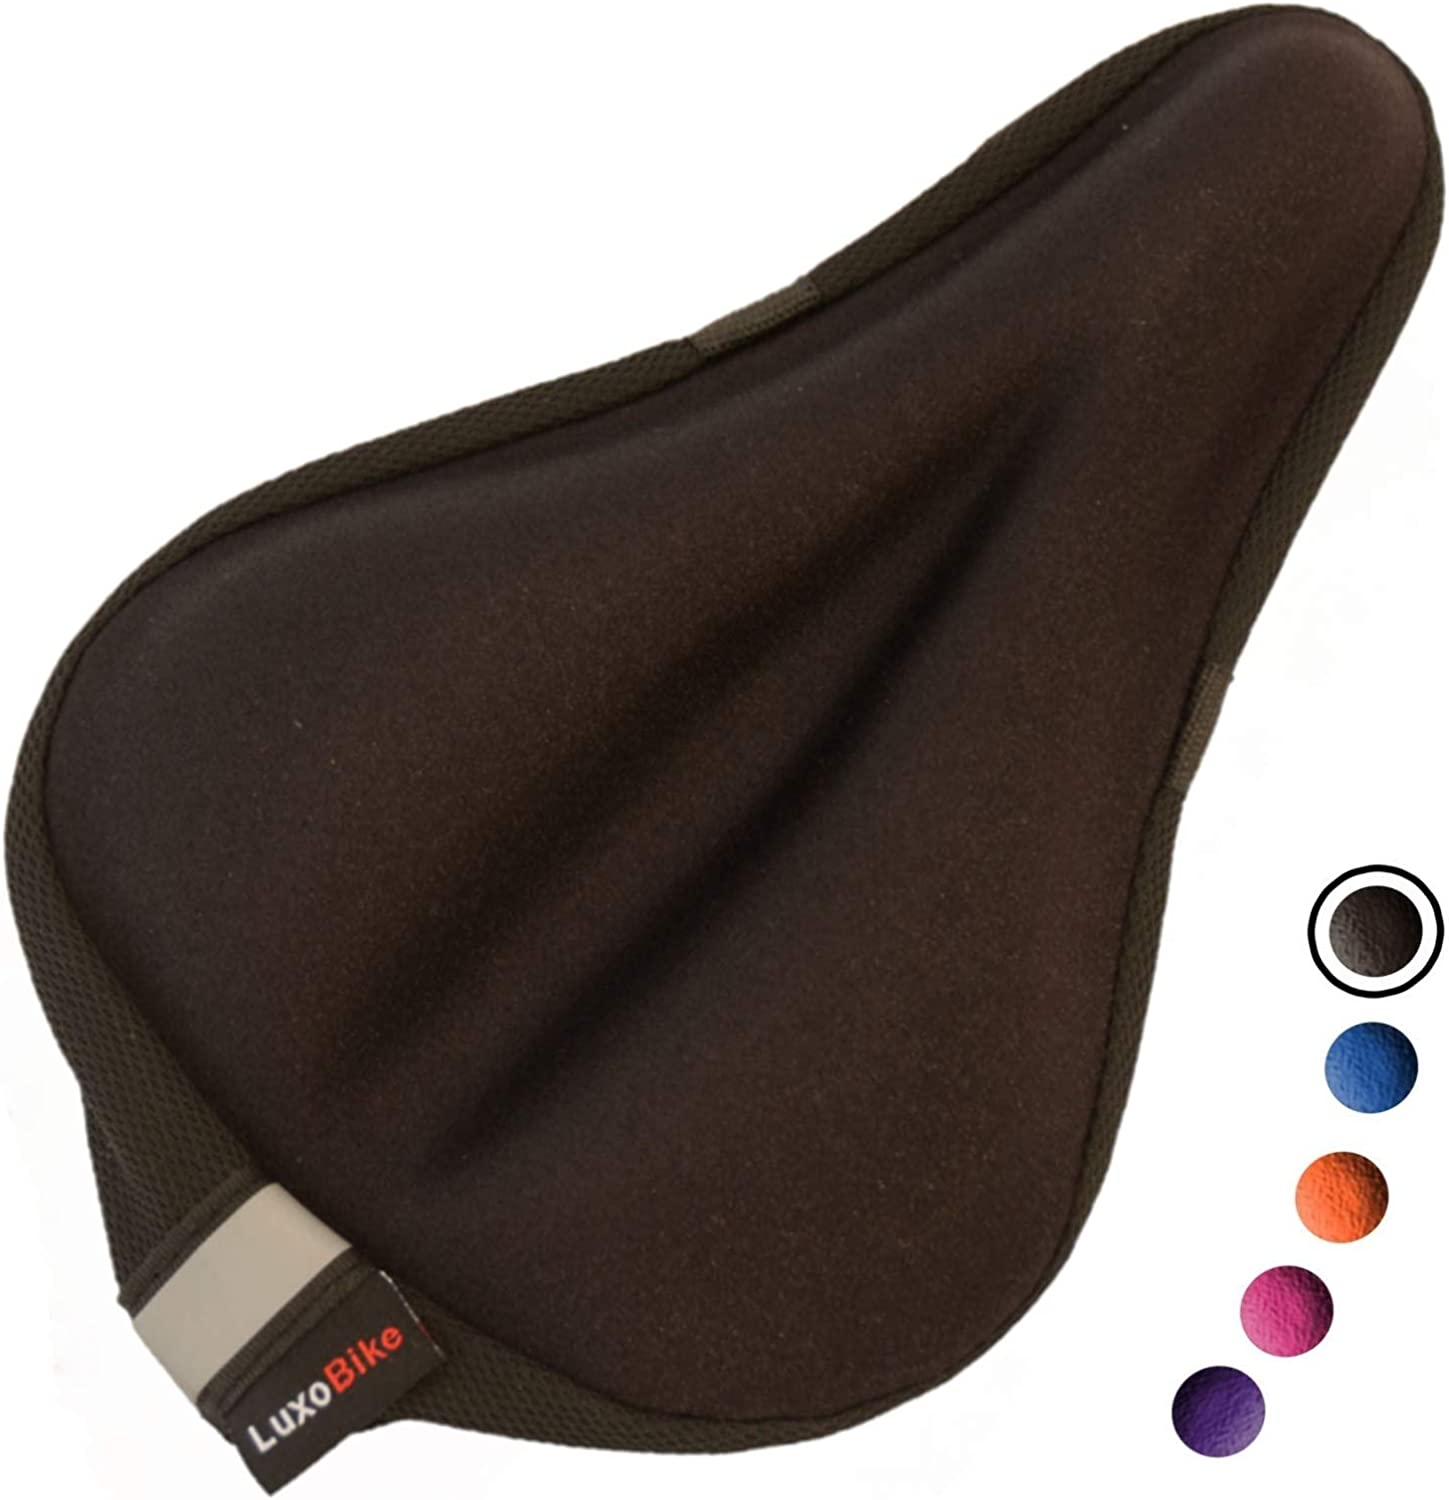 Padding Outdoor Cycling Bike Seat Bike Seat Cushion Bicycle Saddle Gel Saddle